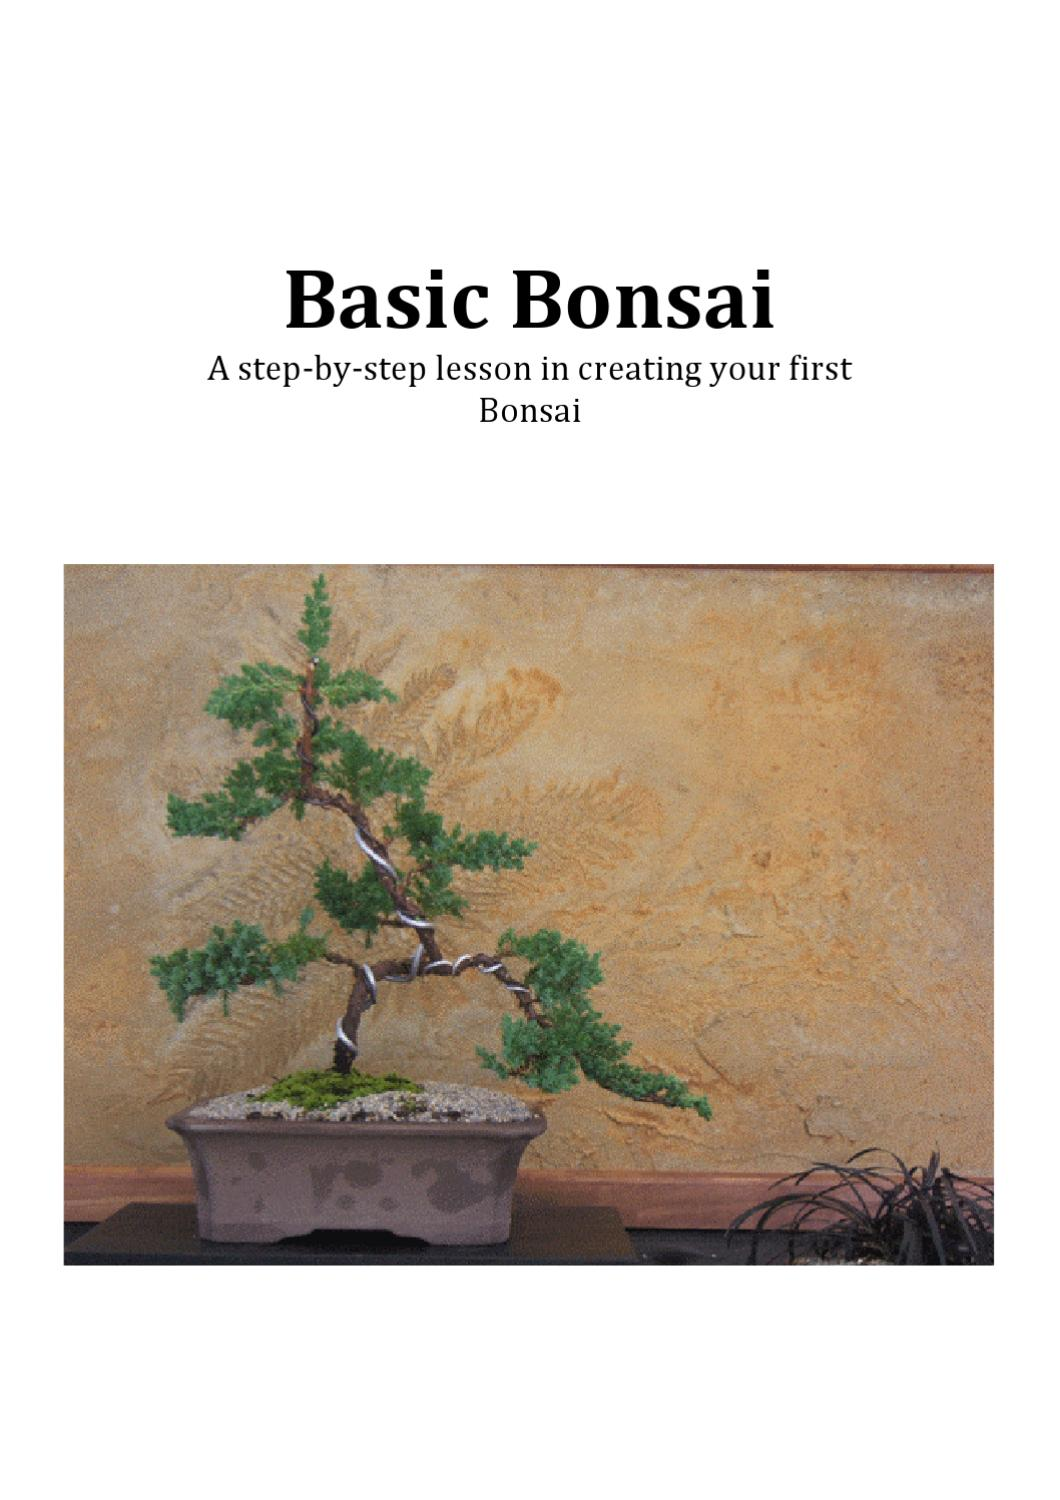 Basic Bonsai By Mark Williams Issuu Wiring Your Tree